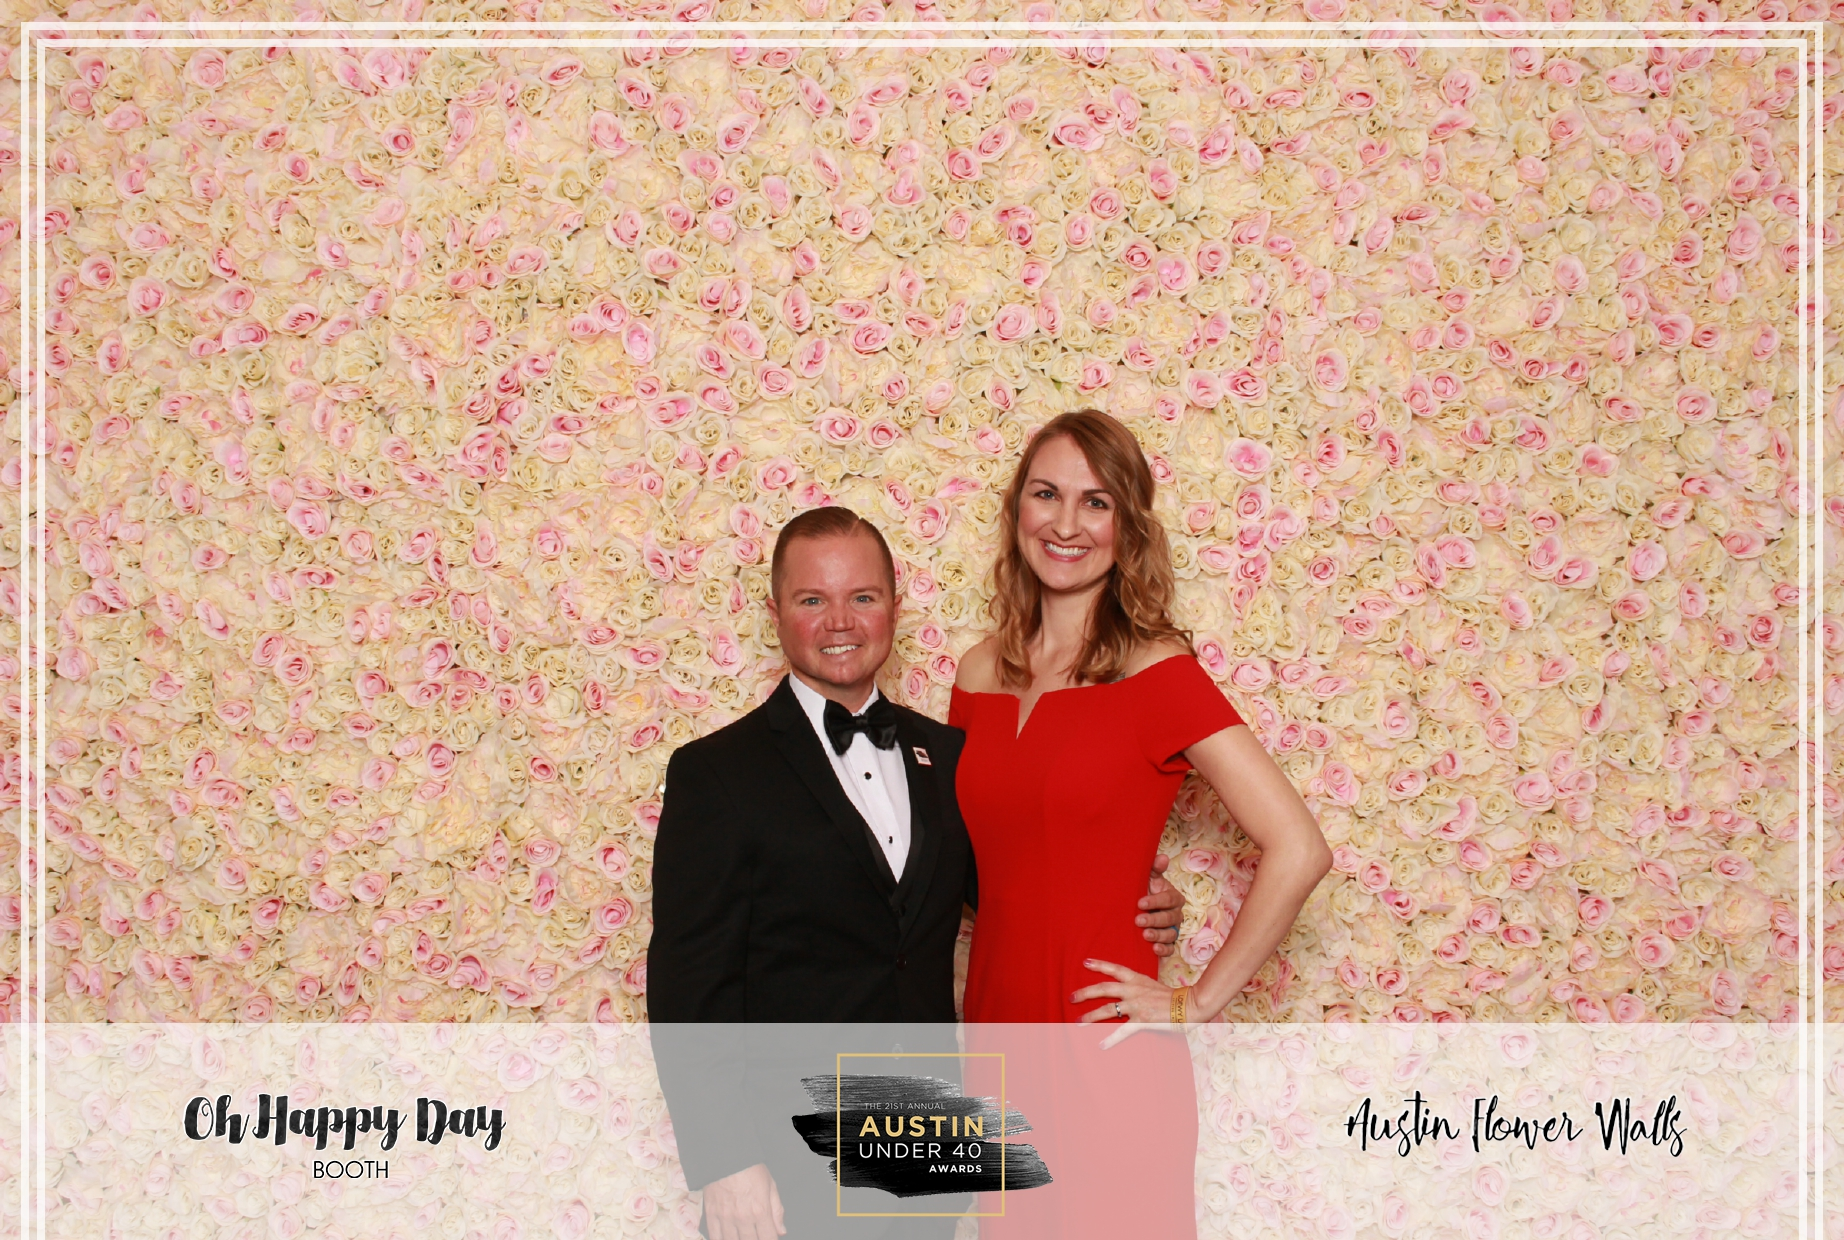 Oh Happy Day Booth - Austin Under 40-38.jpg